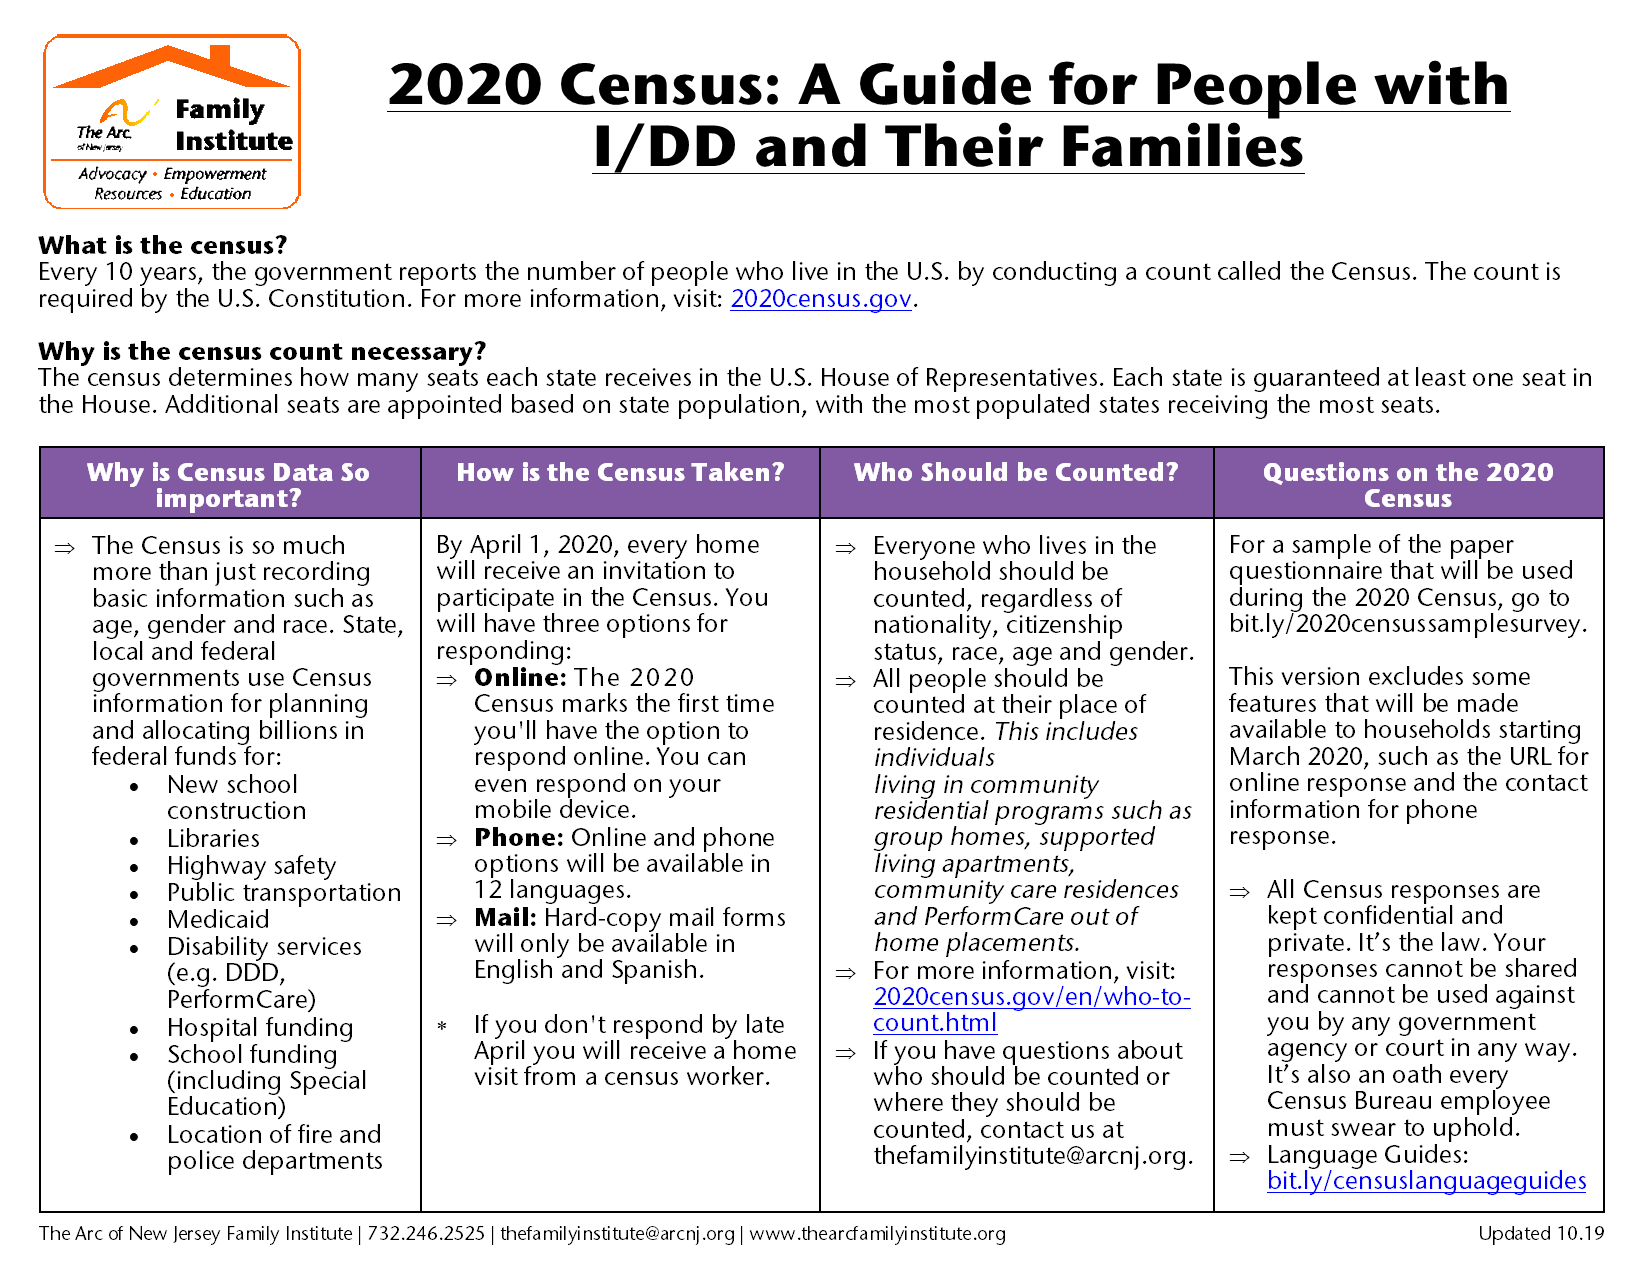 2020 Census: A Guide for People with Intellectual and Developmental Disabilities and Their Family